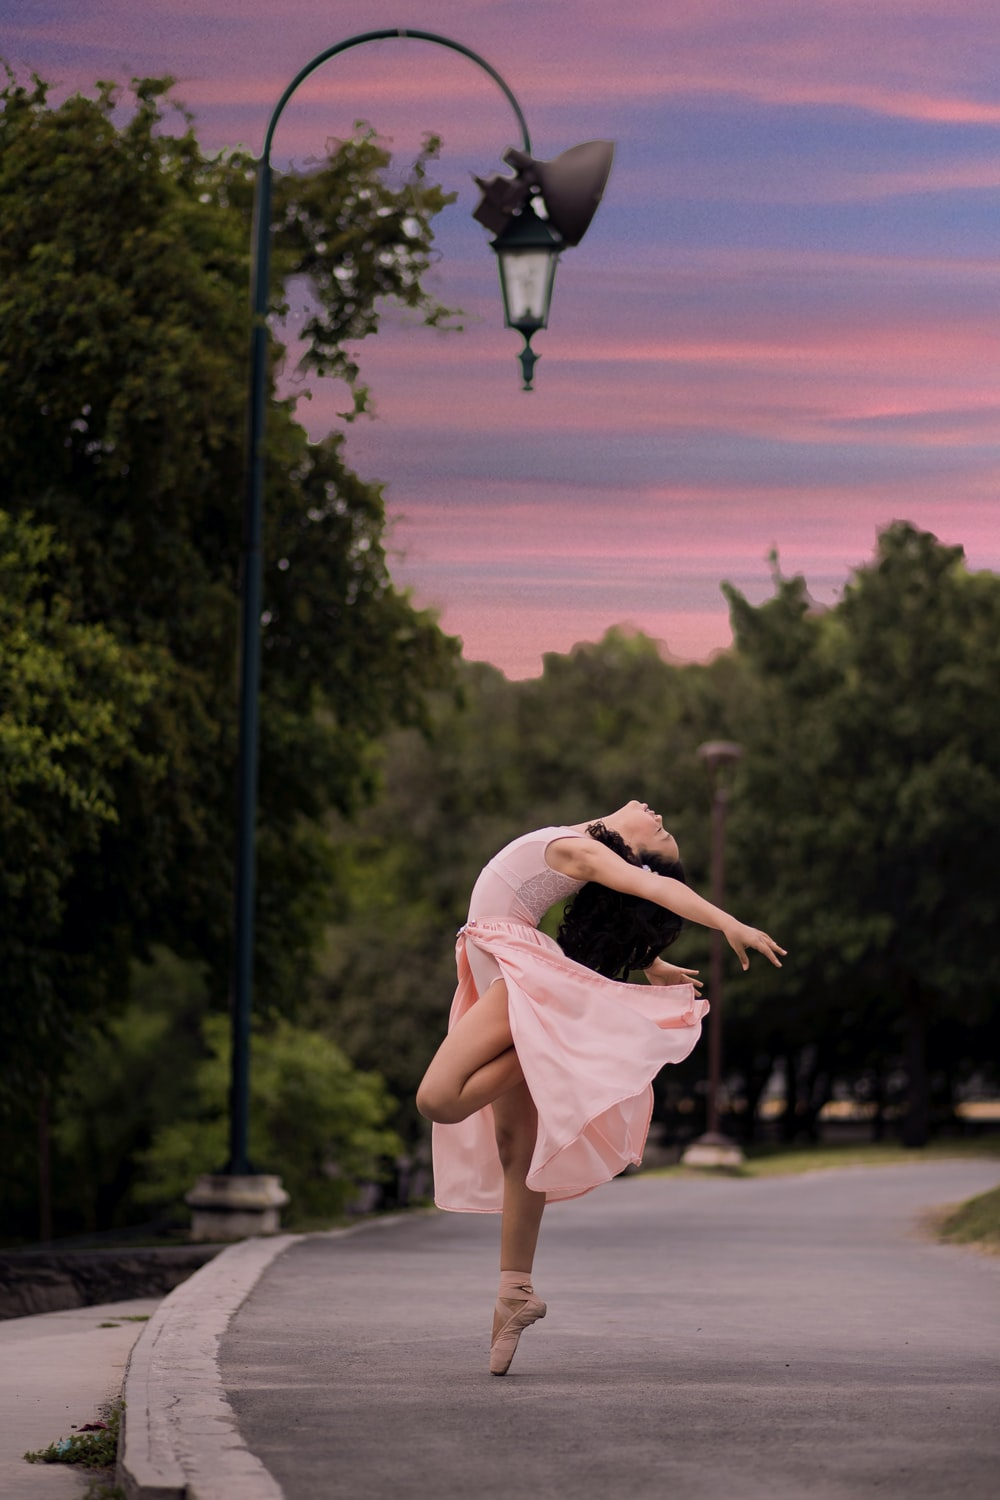 ballet dancer on road beside street lamp